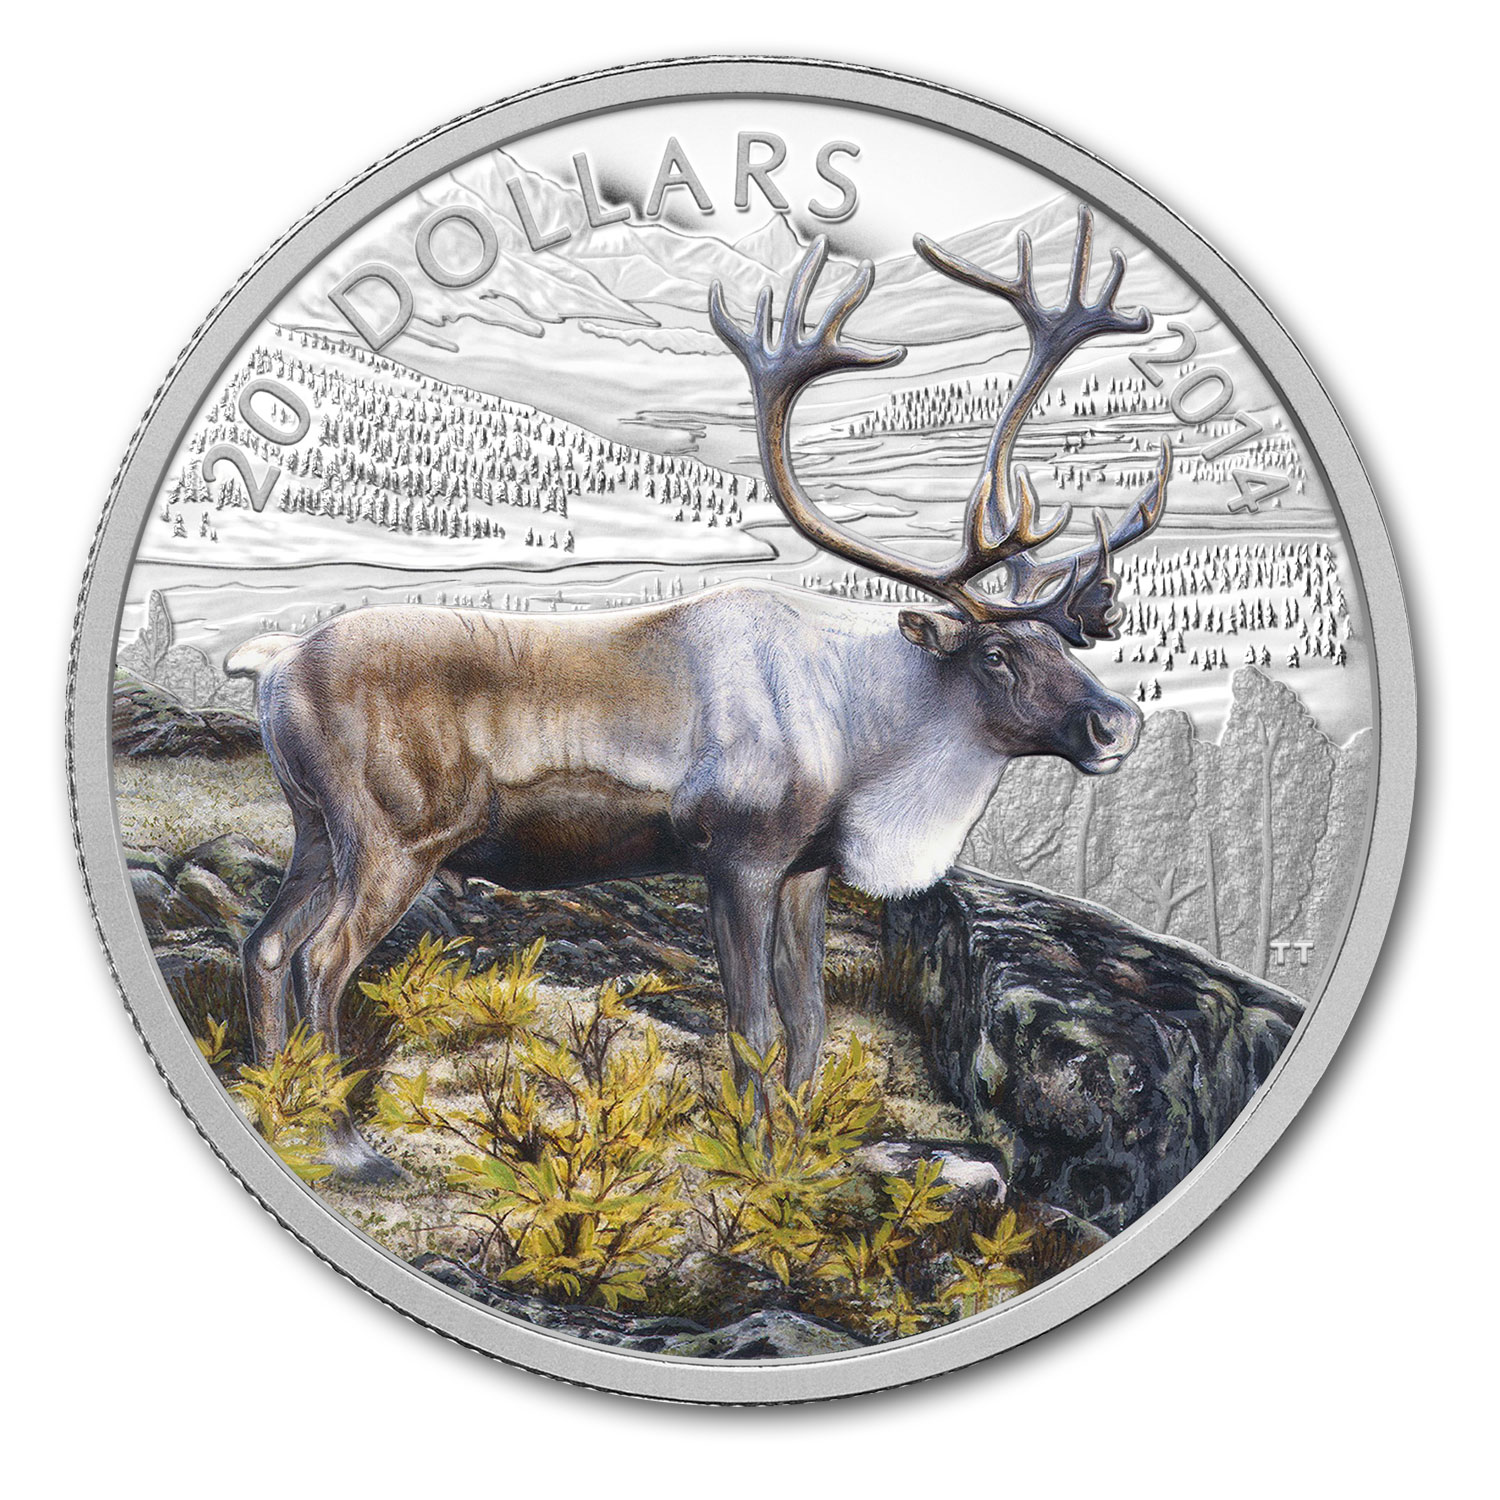 2014 1 oz Silver Canadian $20 The Caribou (Reindeer)